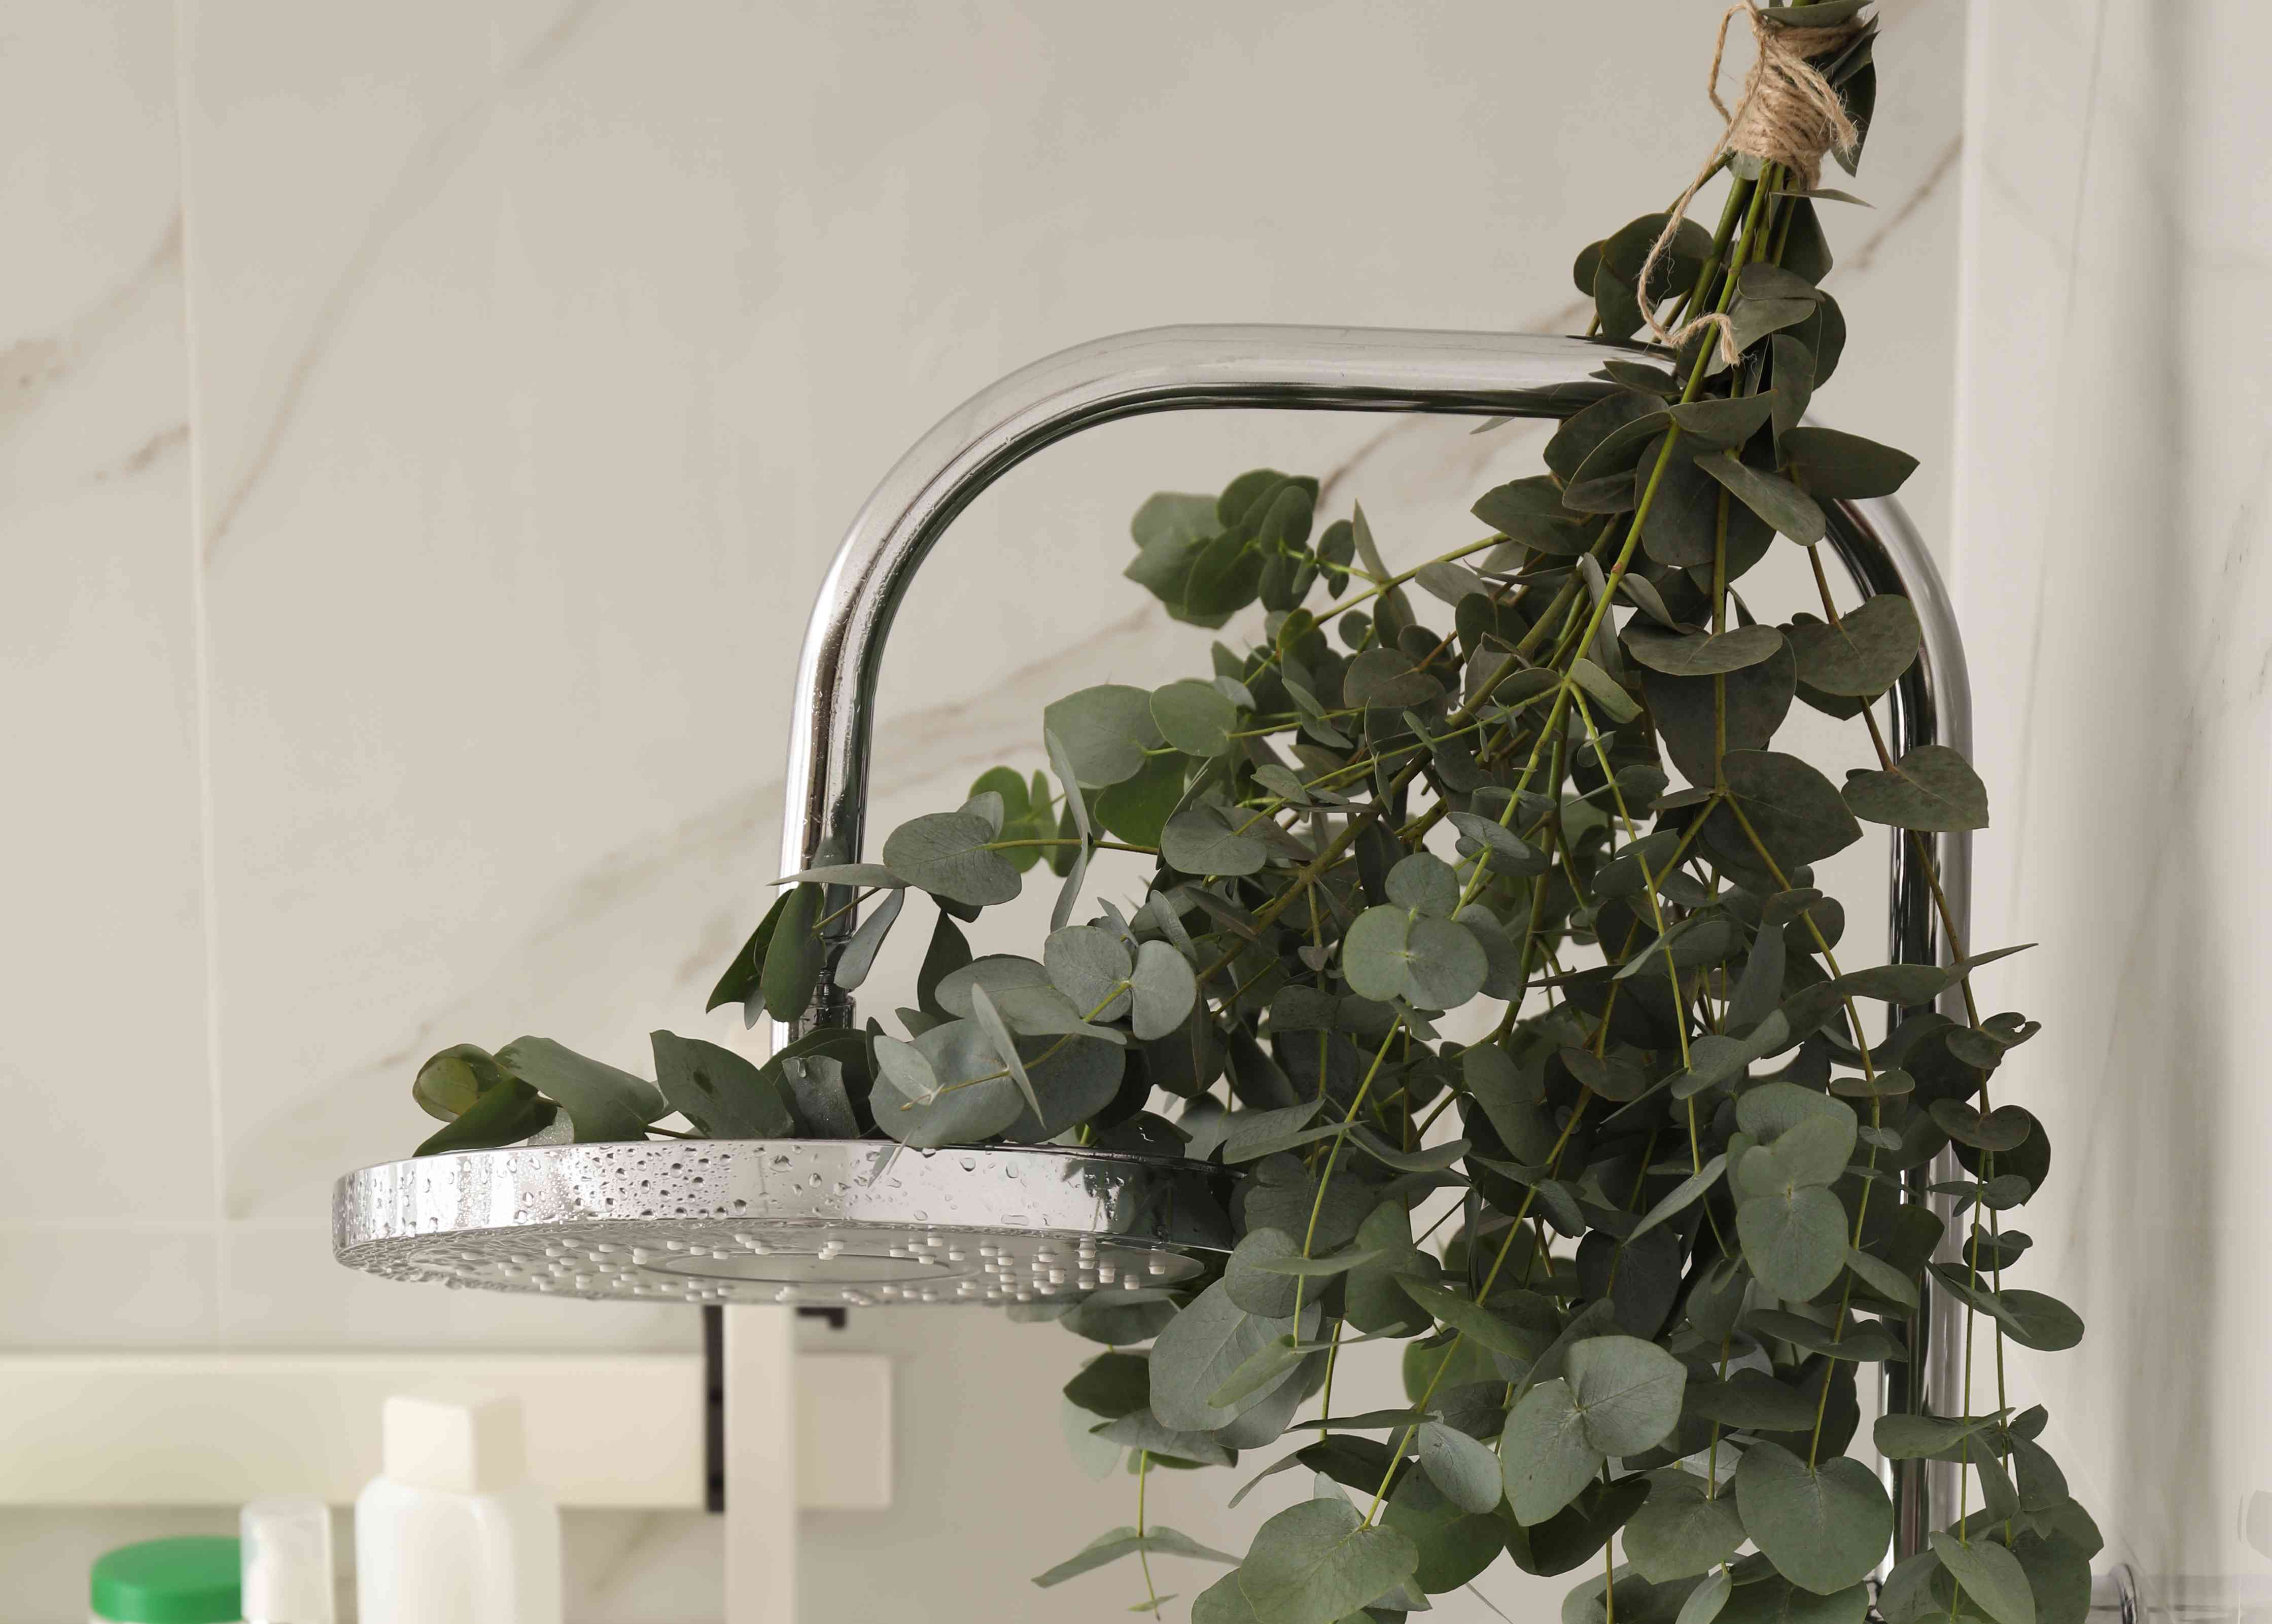 Branches with green eucalyptus leaves in shower